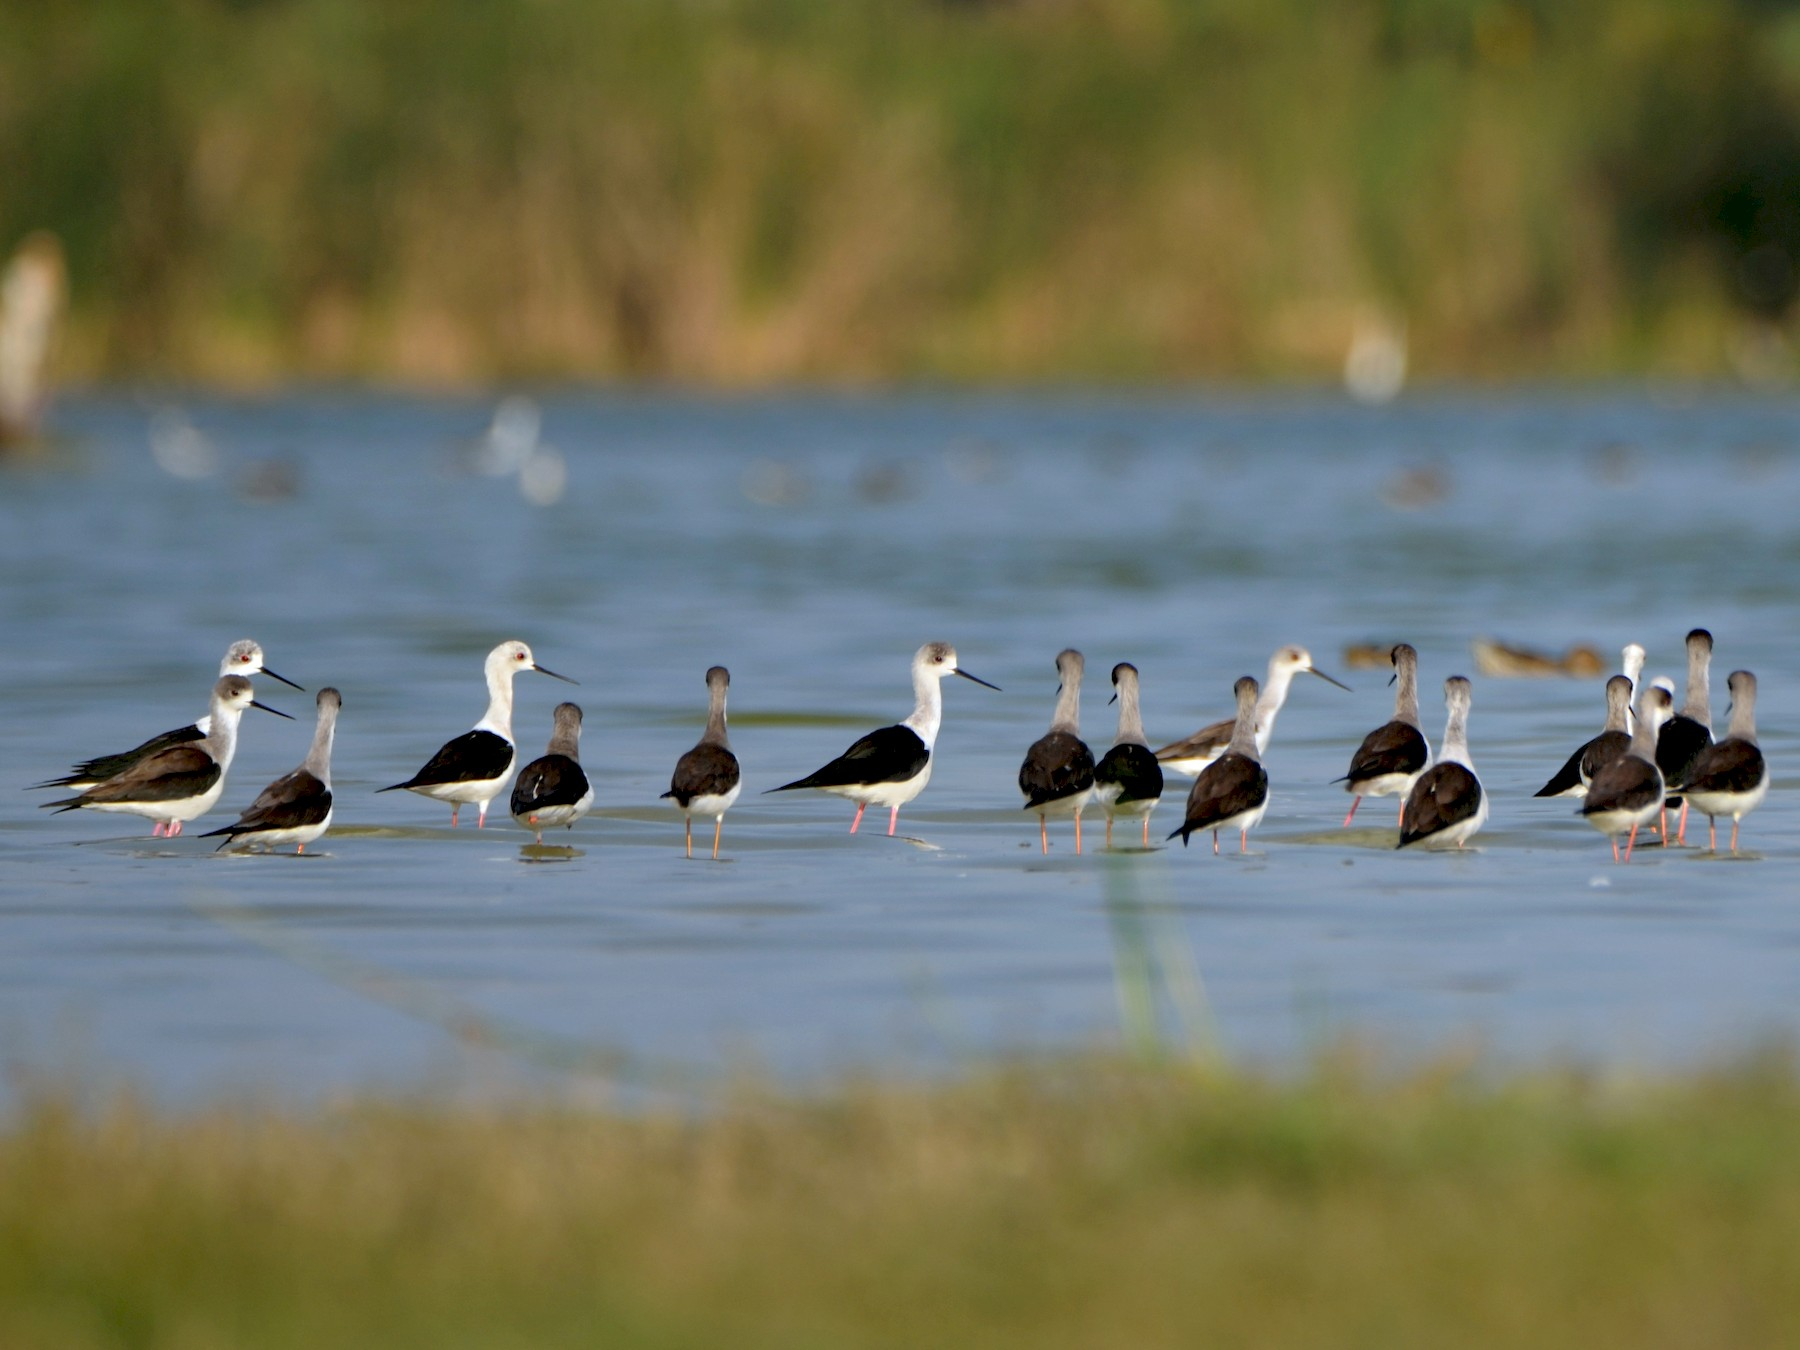 Black-winged Stilt - Bhaskar pandeti